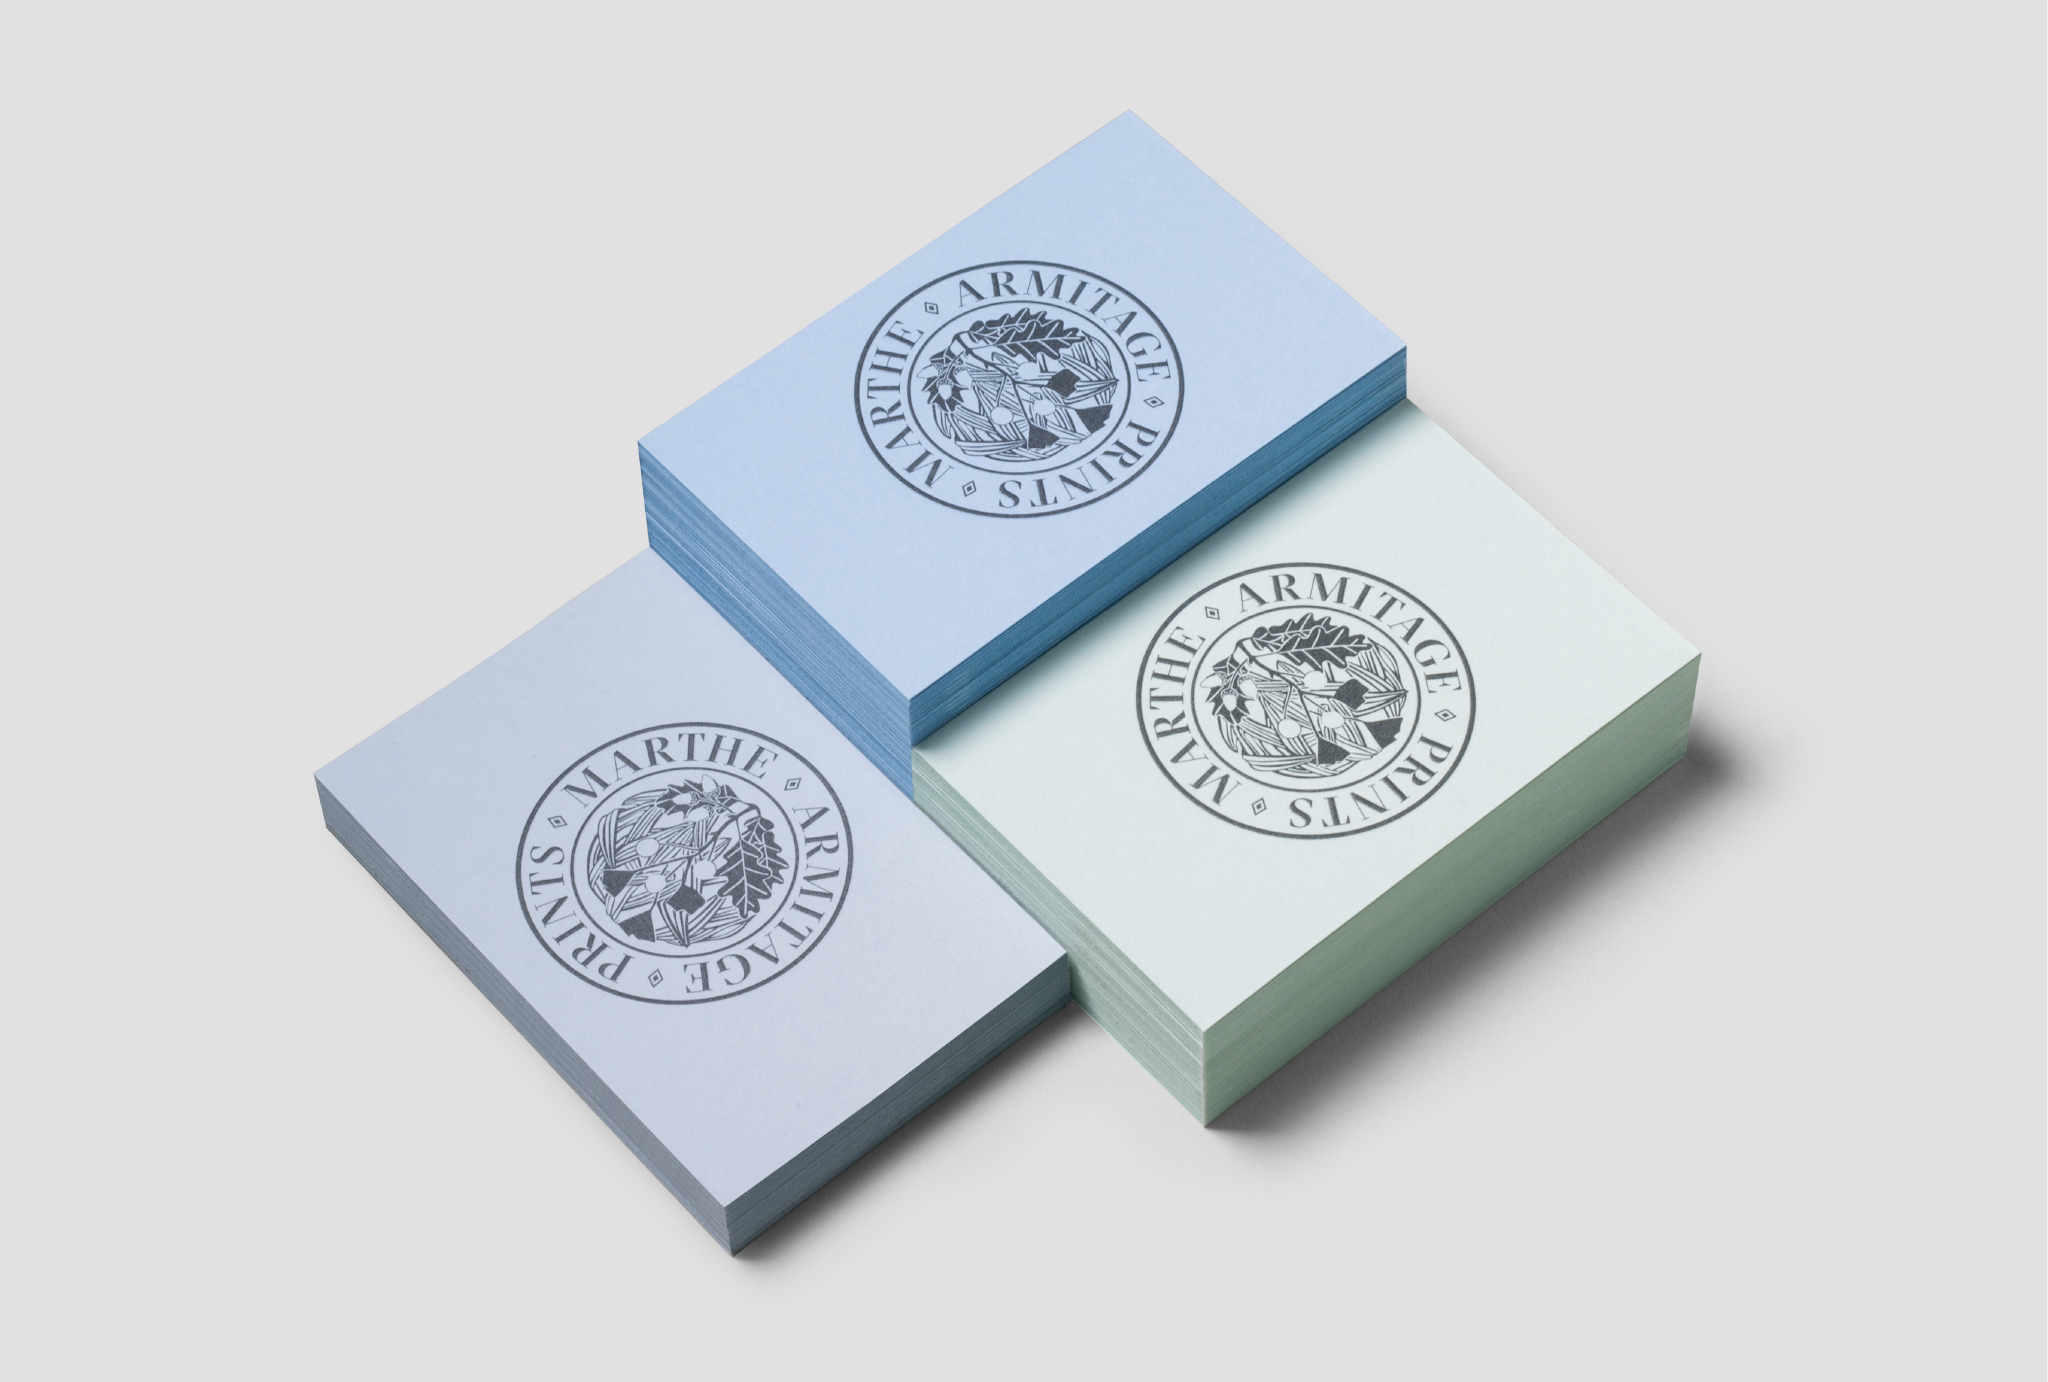 business cards designs, three piles in blue and mint shades